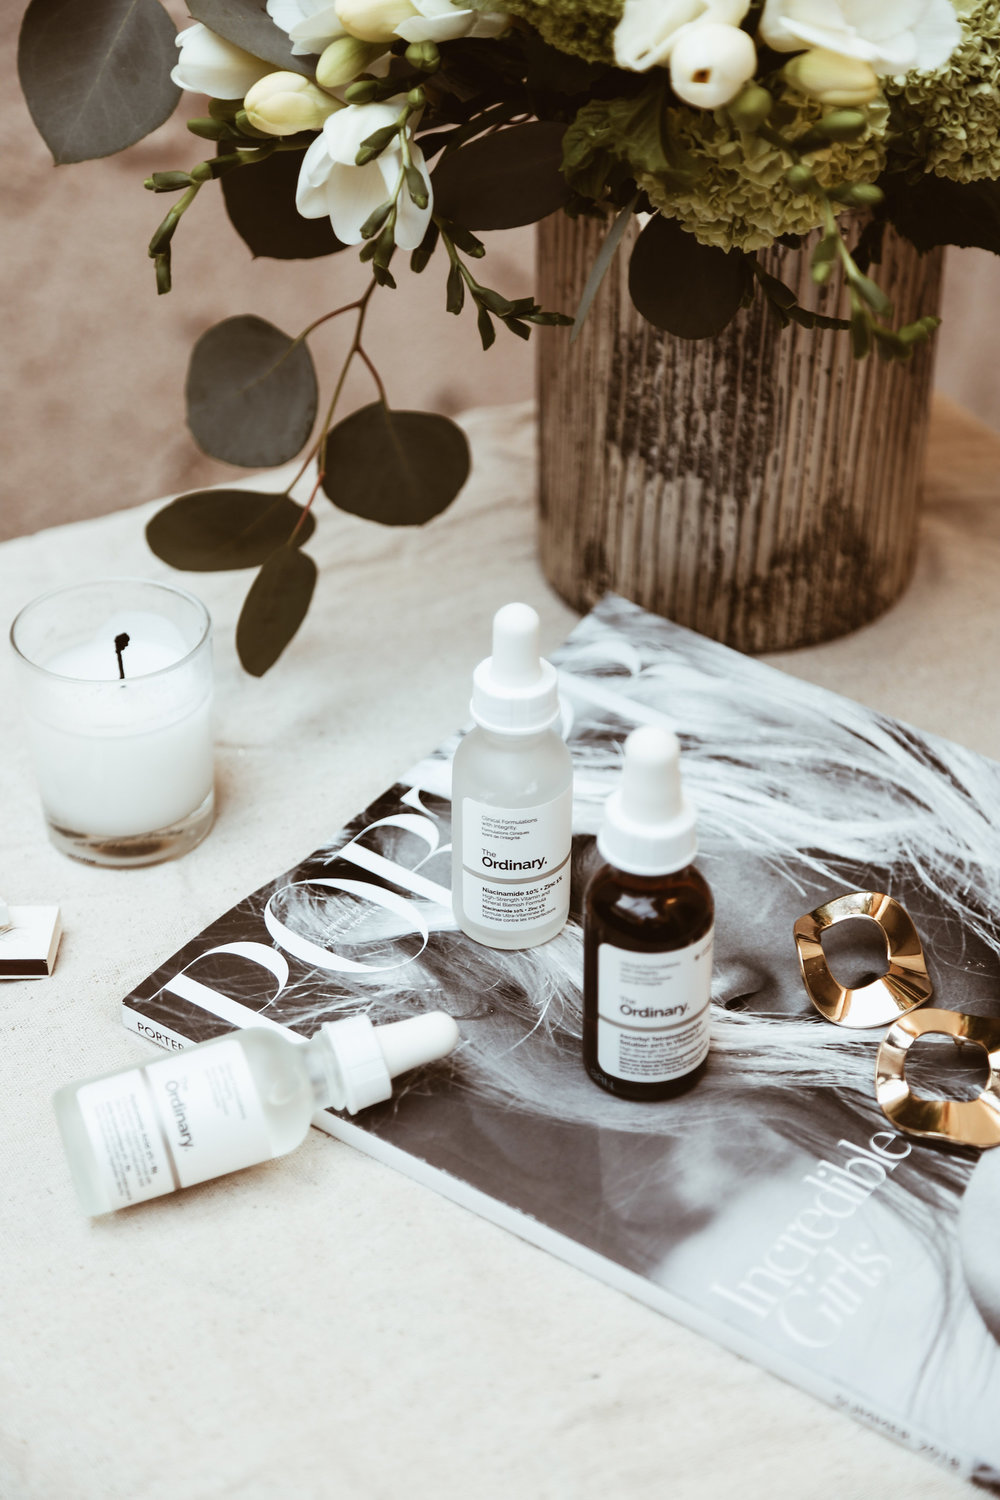 THE ORDINARY - I finally tried this cult beauty favorite. The prices are unbelievably reasonable (some of the items are less than a cup of coffee), and so far they seem good. None of the products have bothered my sensitive skin, too, which is always a big win in my book.So far the products that are really standing out to me are the hyaluronic acid (for intense moisture), the lactic acid (helps me wake up with glowing skin),the ascorbic tetraisopalmitate solution (to help with uneven skin tone) and niacinamide (to help with breakouts).